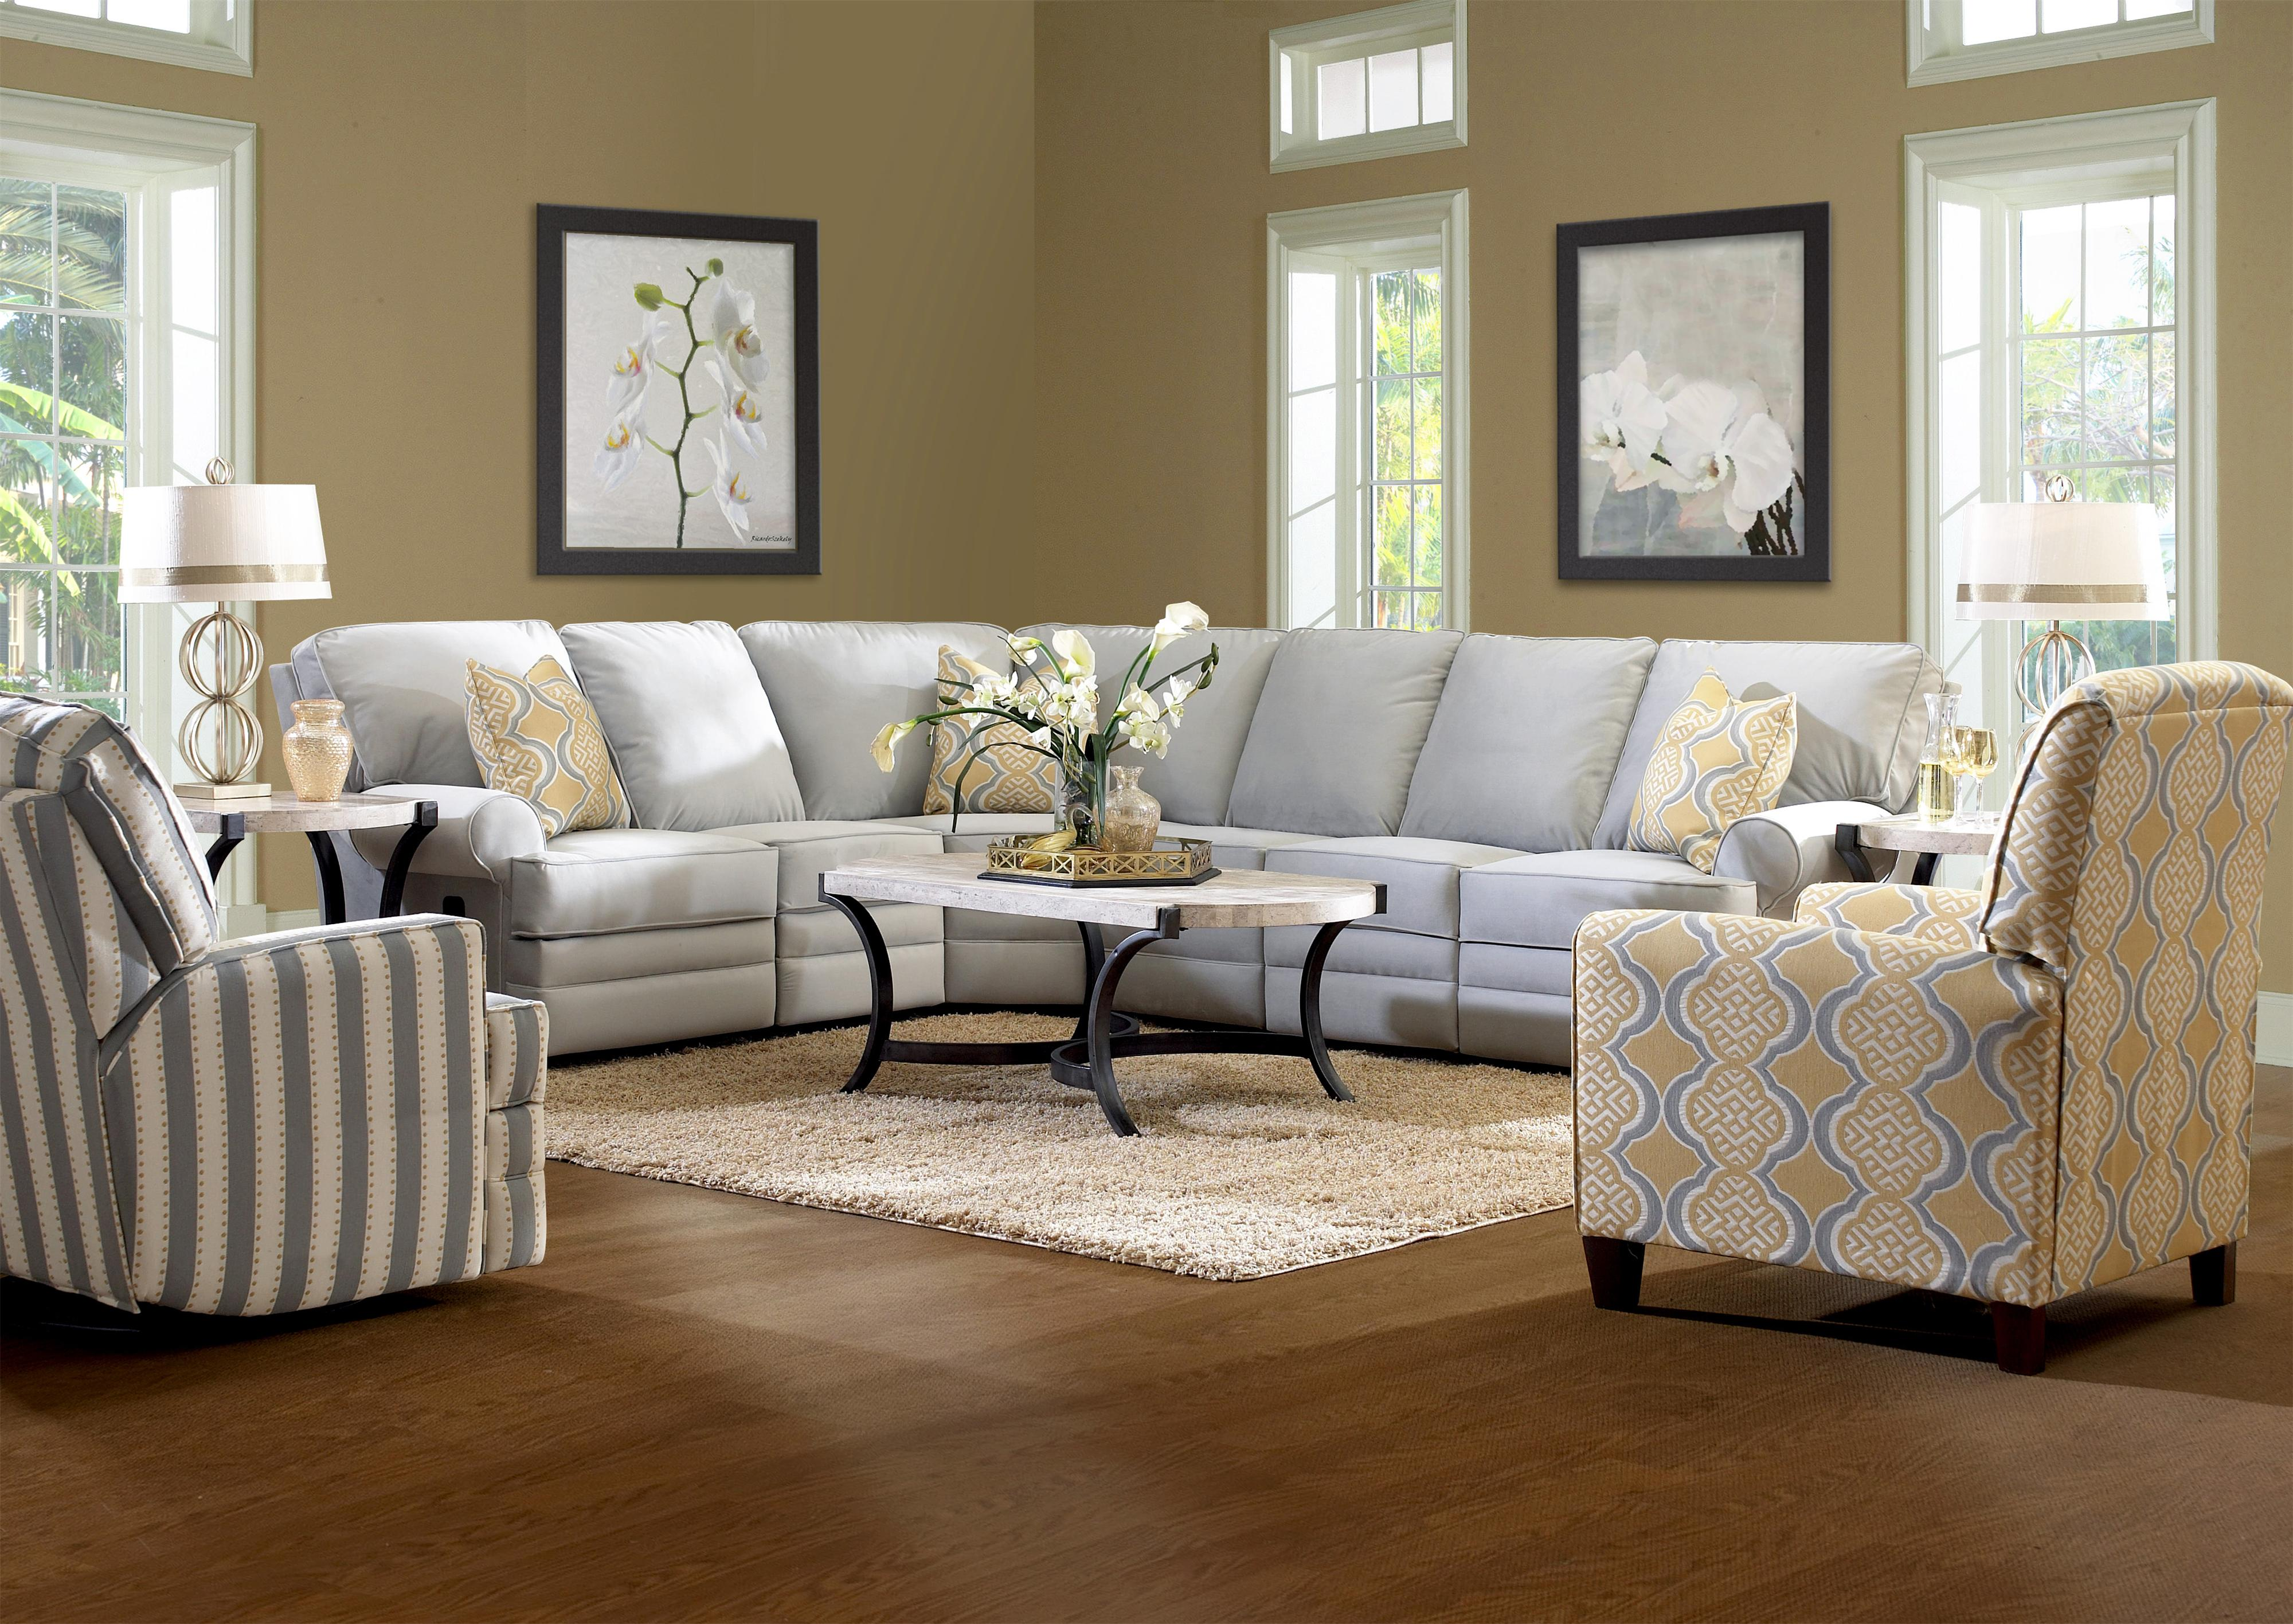 Classic Reclining Sectional Sofa with Rolled Arms by Klaussner